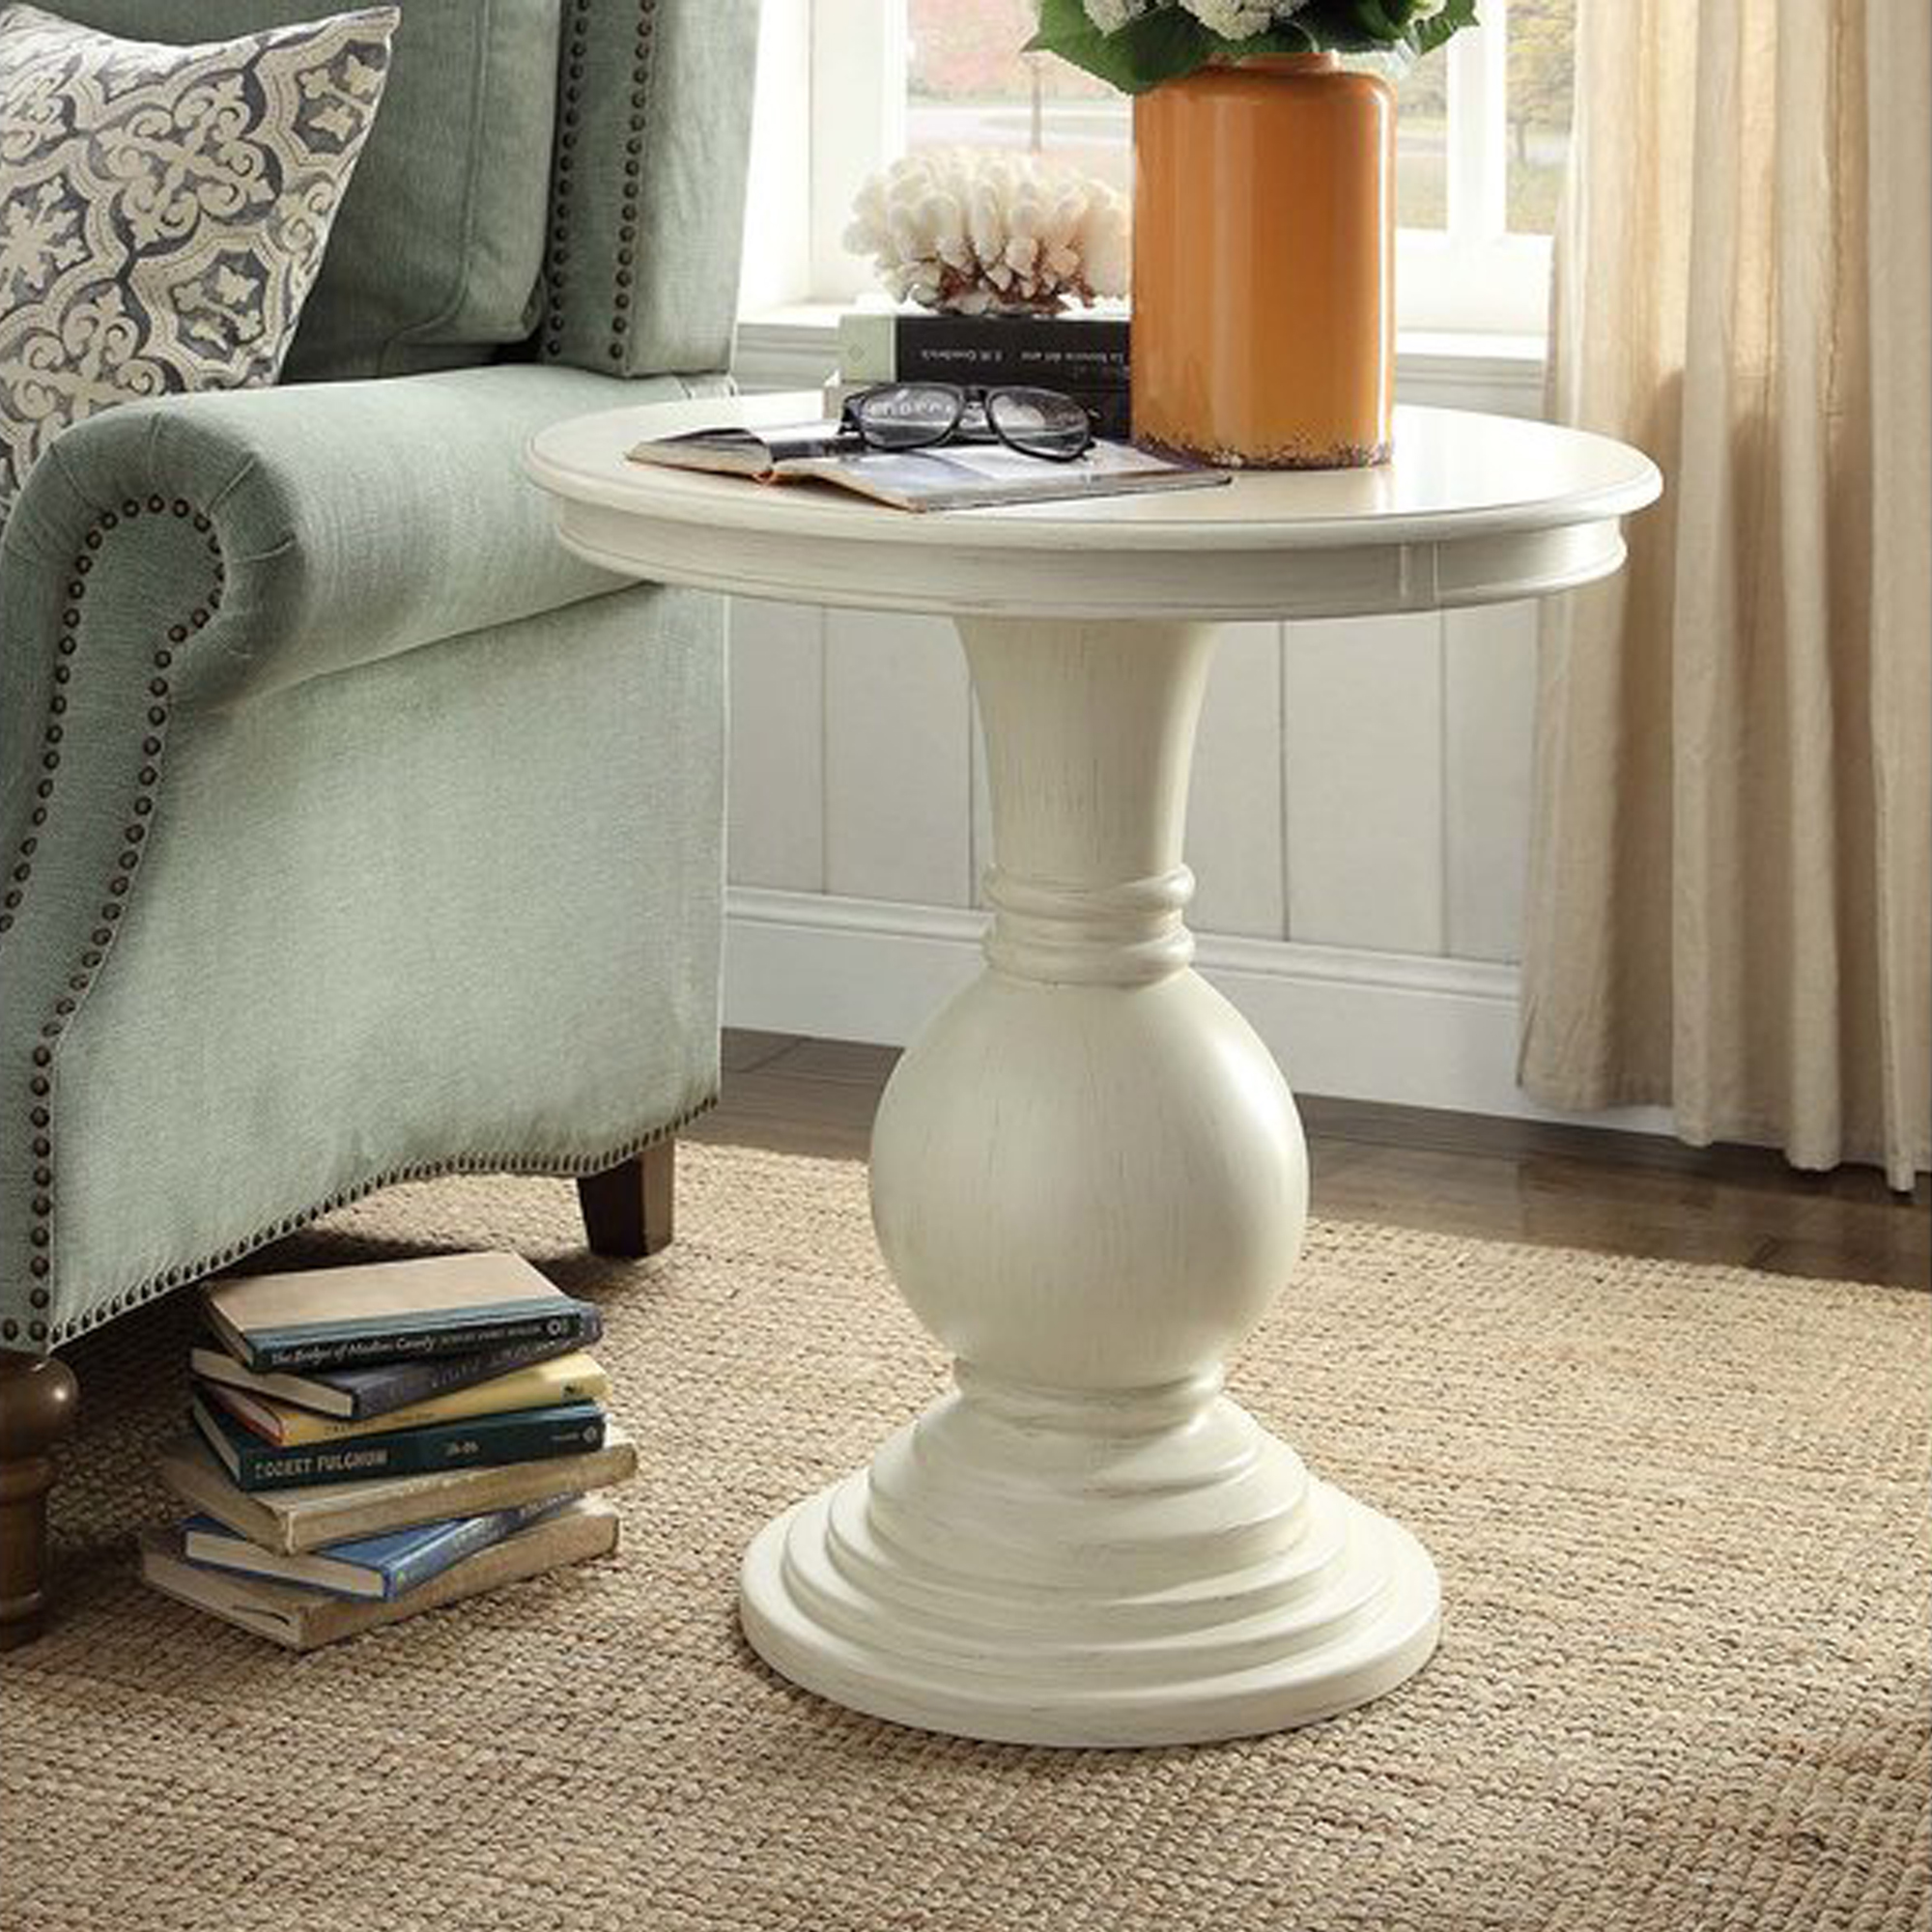 tall pedestal accent table design ideas round end tables side lamp for wrought iron small black distressed off white best accentuate your living shallow console patterned rug